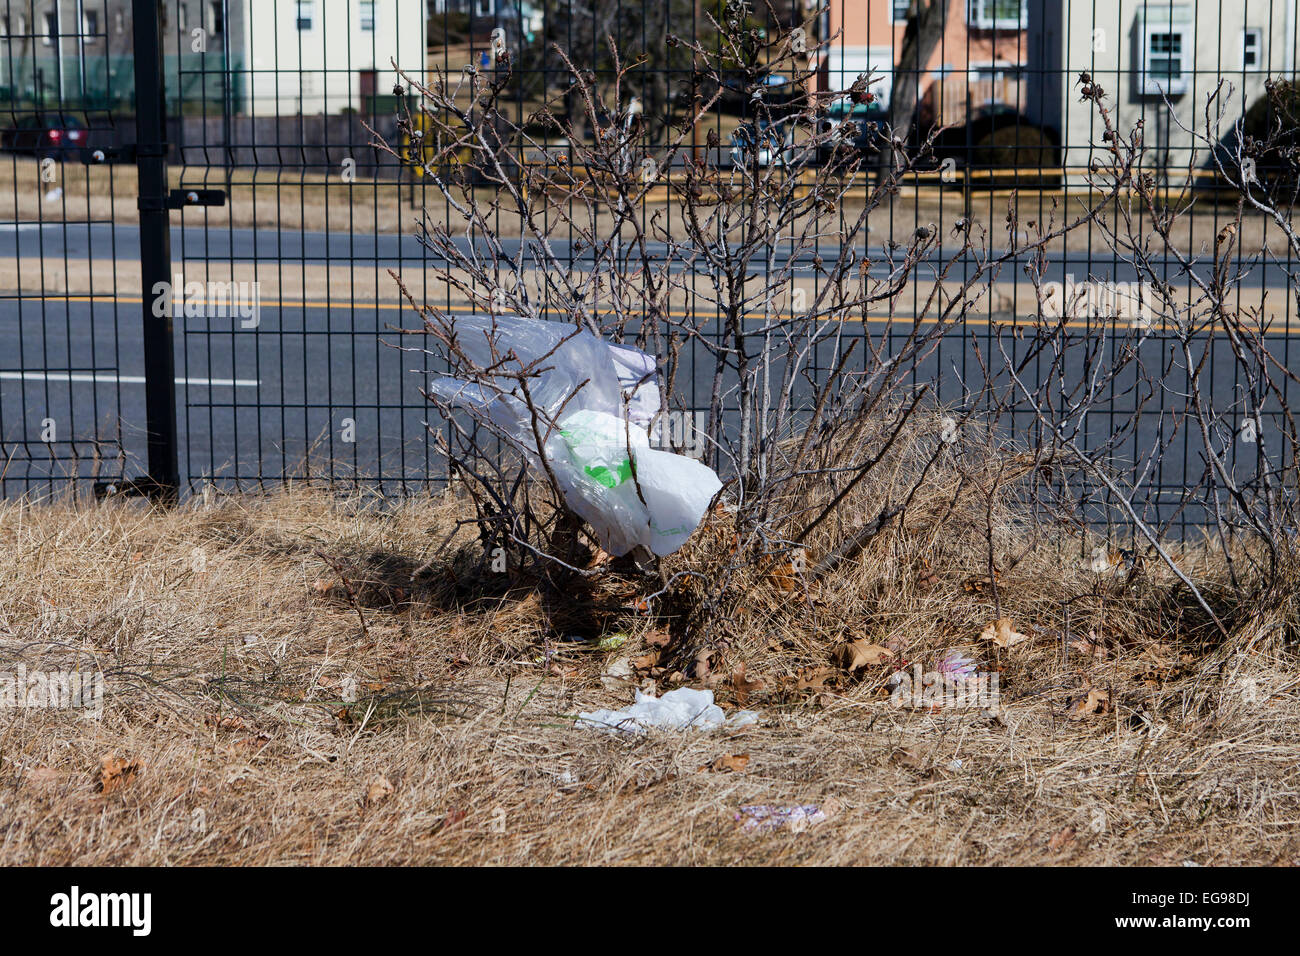 Plastic grocery bags stuck on roadside bushes - USA - Stock Image